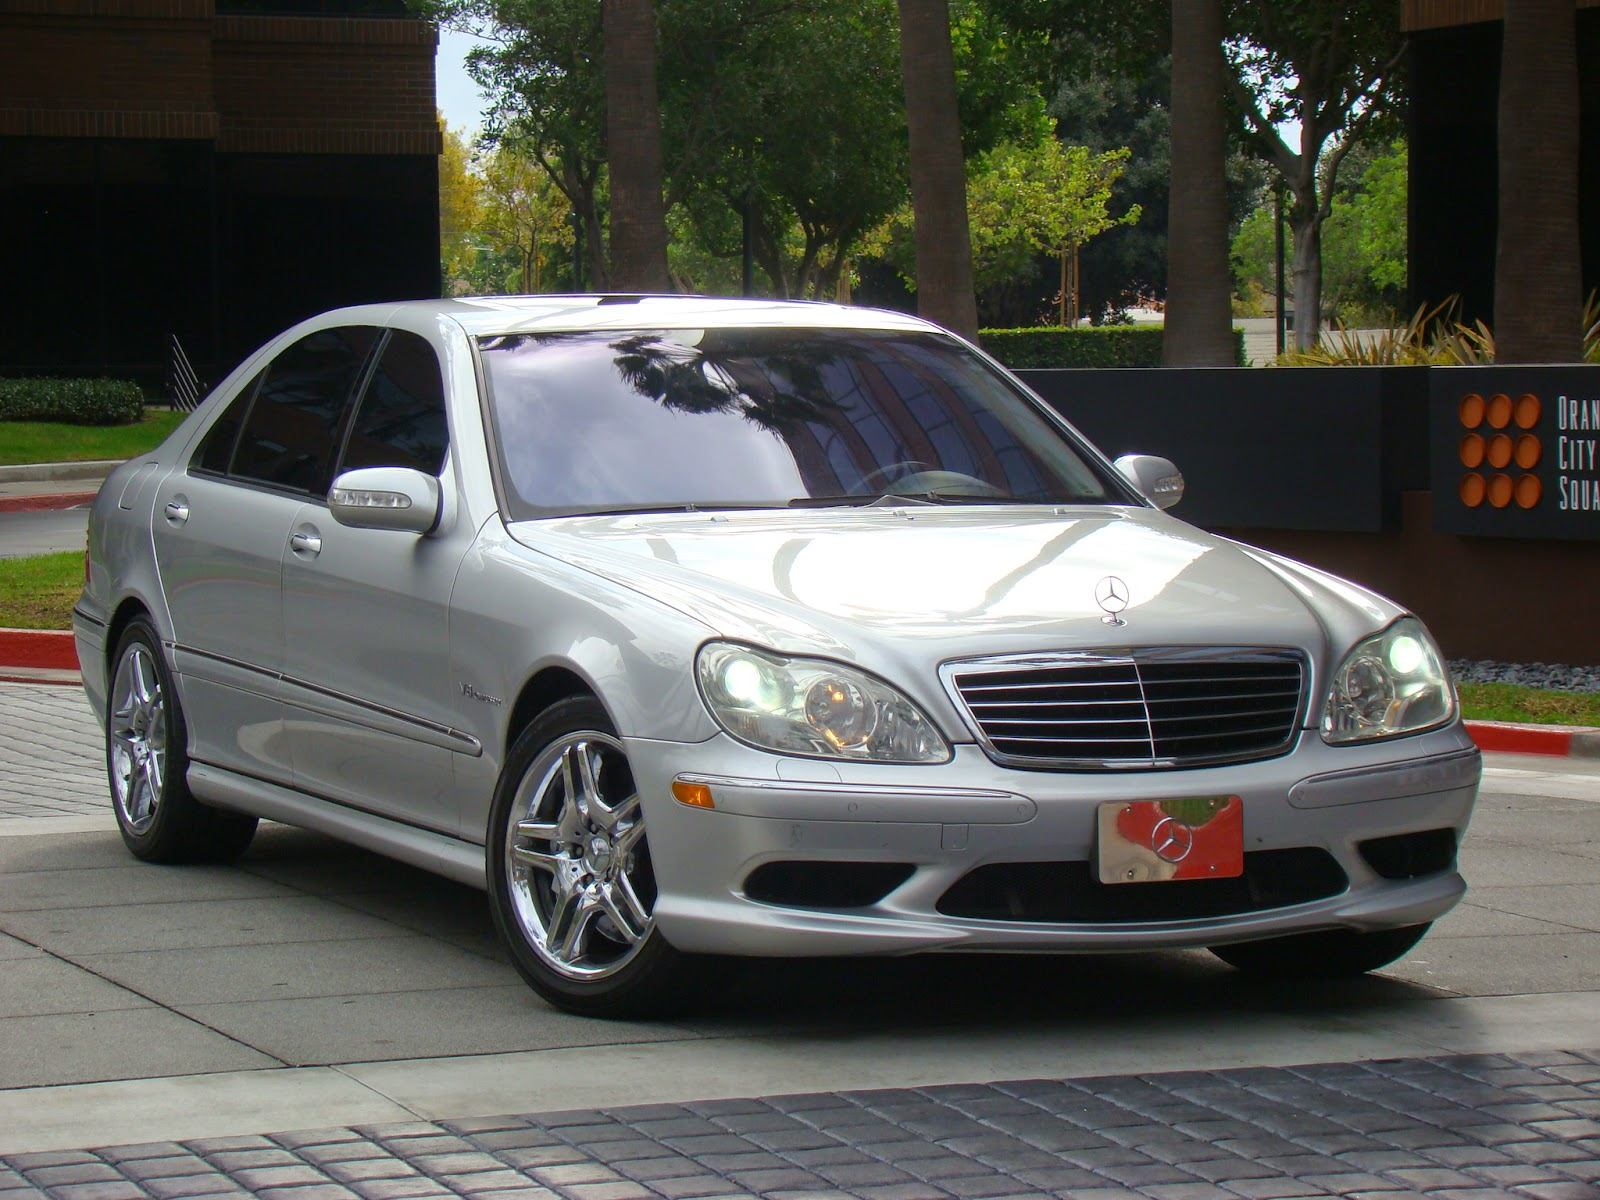 Daily turismo 15k fast class 2003 mercedes benz s55 amg for Mercedes benz s55